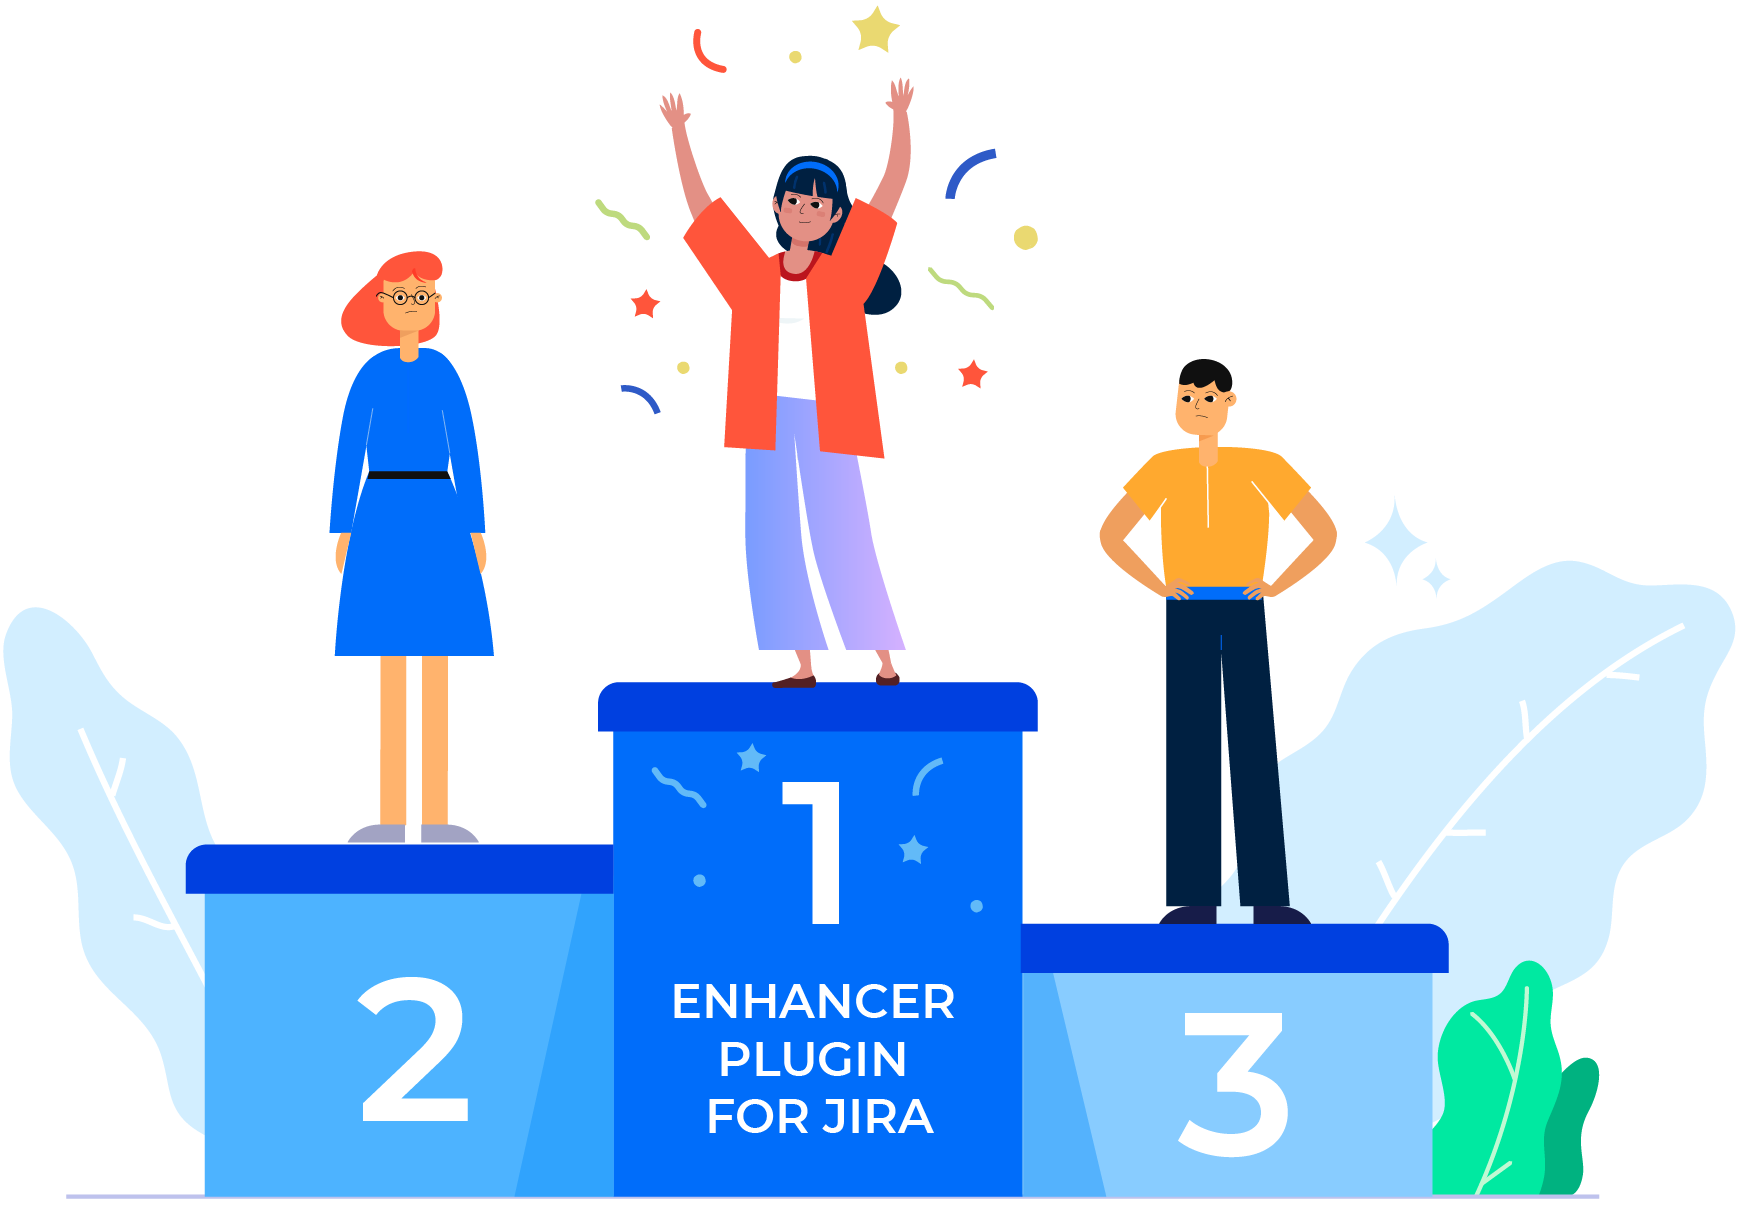 Enhancer Plugin for Jira by Snapbytes